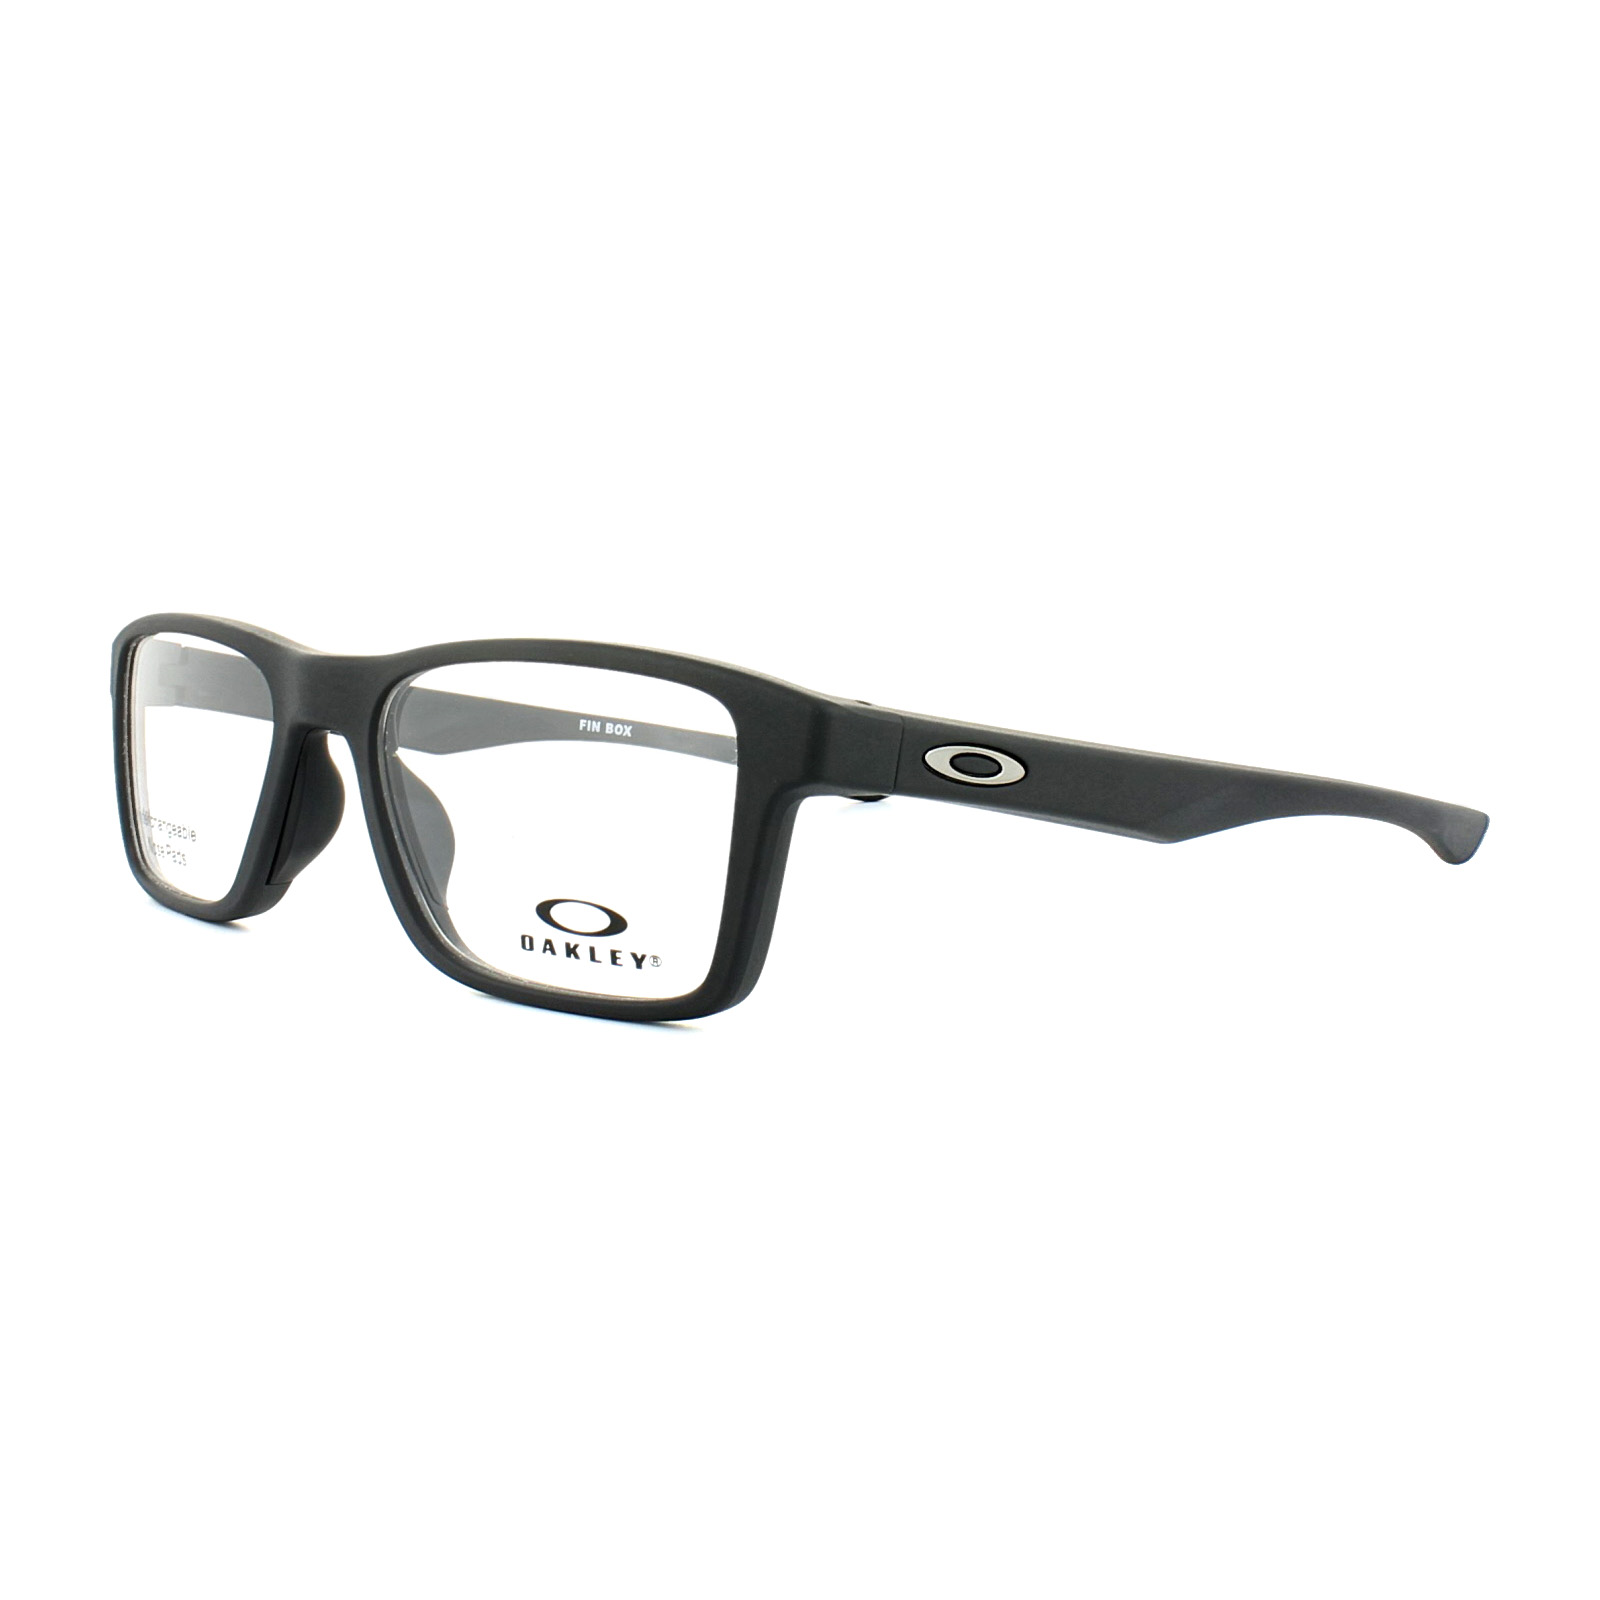 93af7bad96 Cheap Oakley Fin Box Trubridge Glasses Frames - Discounted Sunglasses